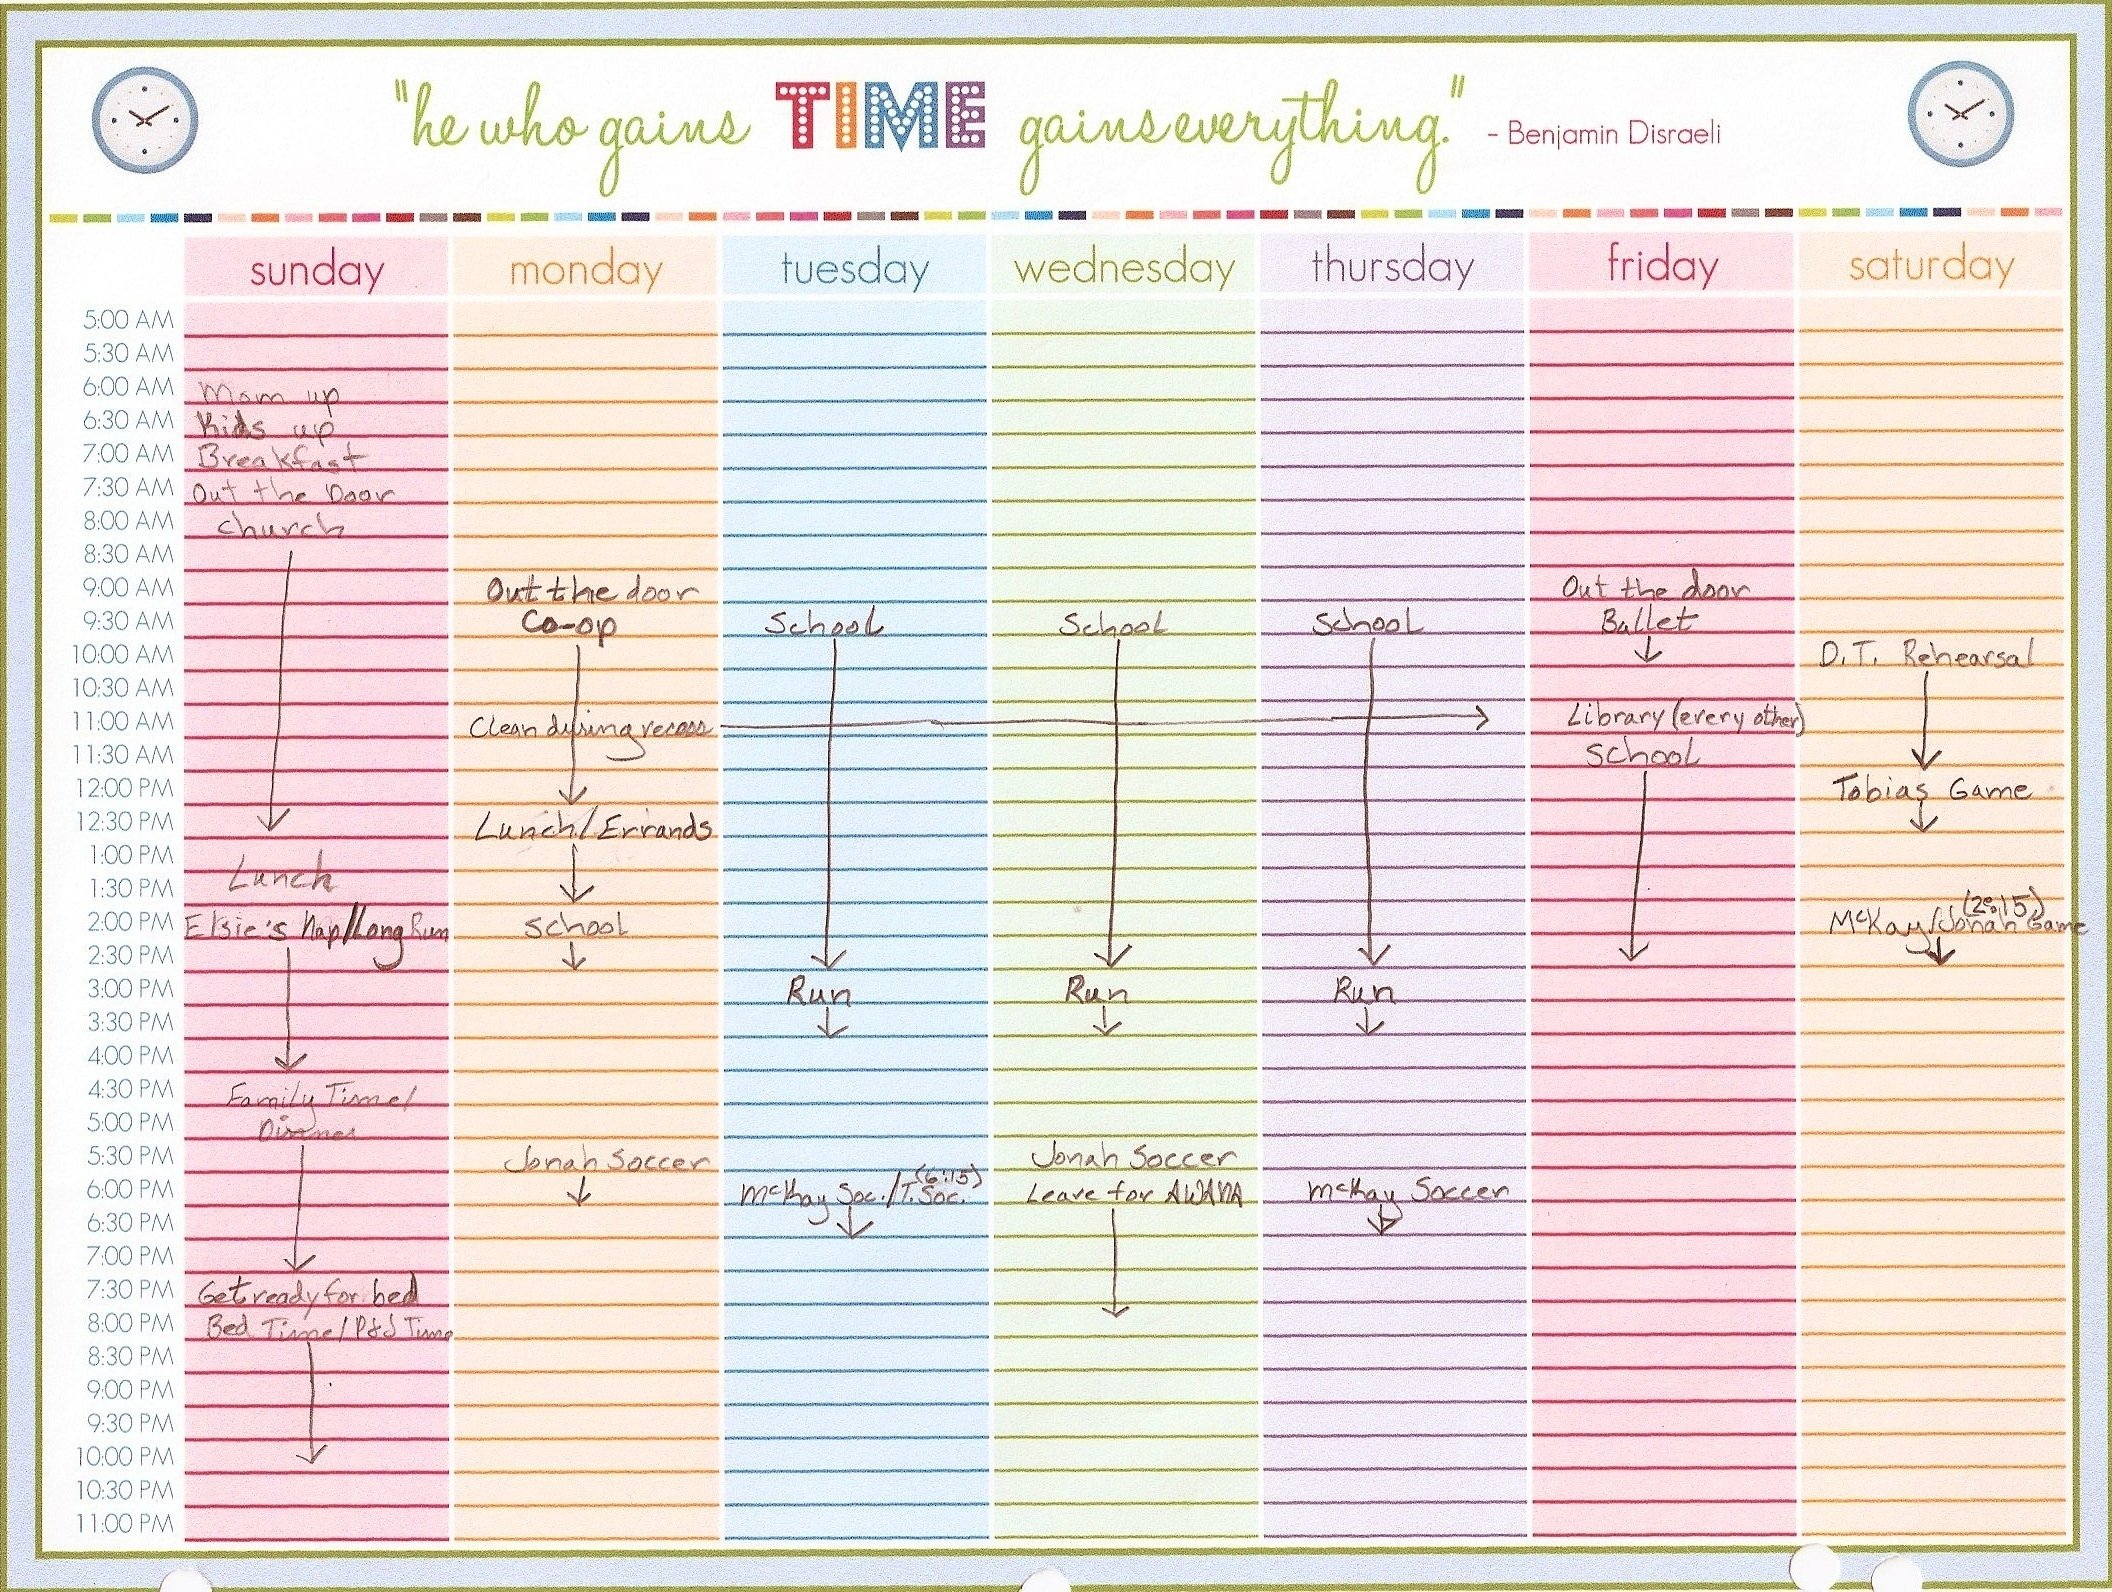 Monthly Calendars With Hourly Slots - Calendar Inspiration Weekly Printable Calendar With Time Slots Free